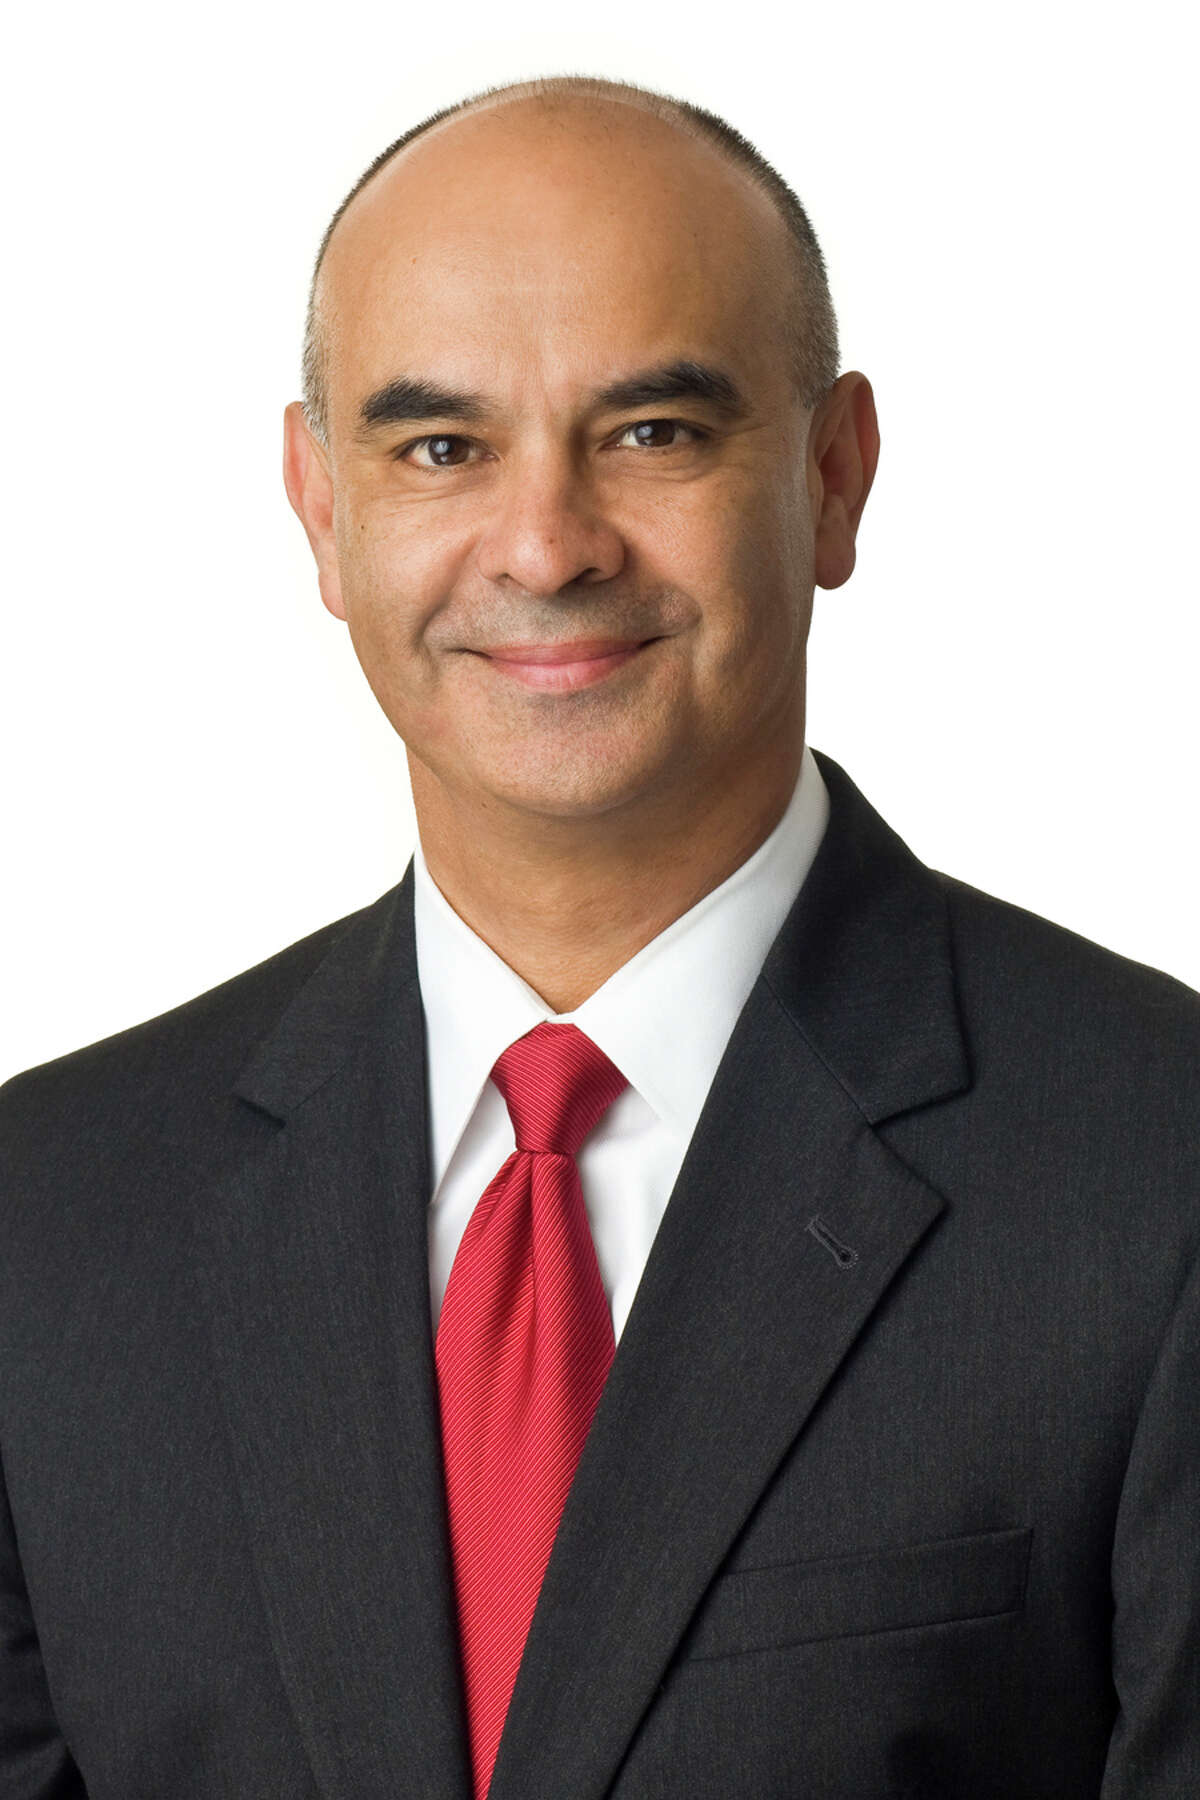 Rick Noriega, national president of Avance, a national nonprofit dedicated to providing innovative education and family support services to hard-to-reach families.